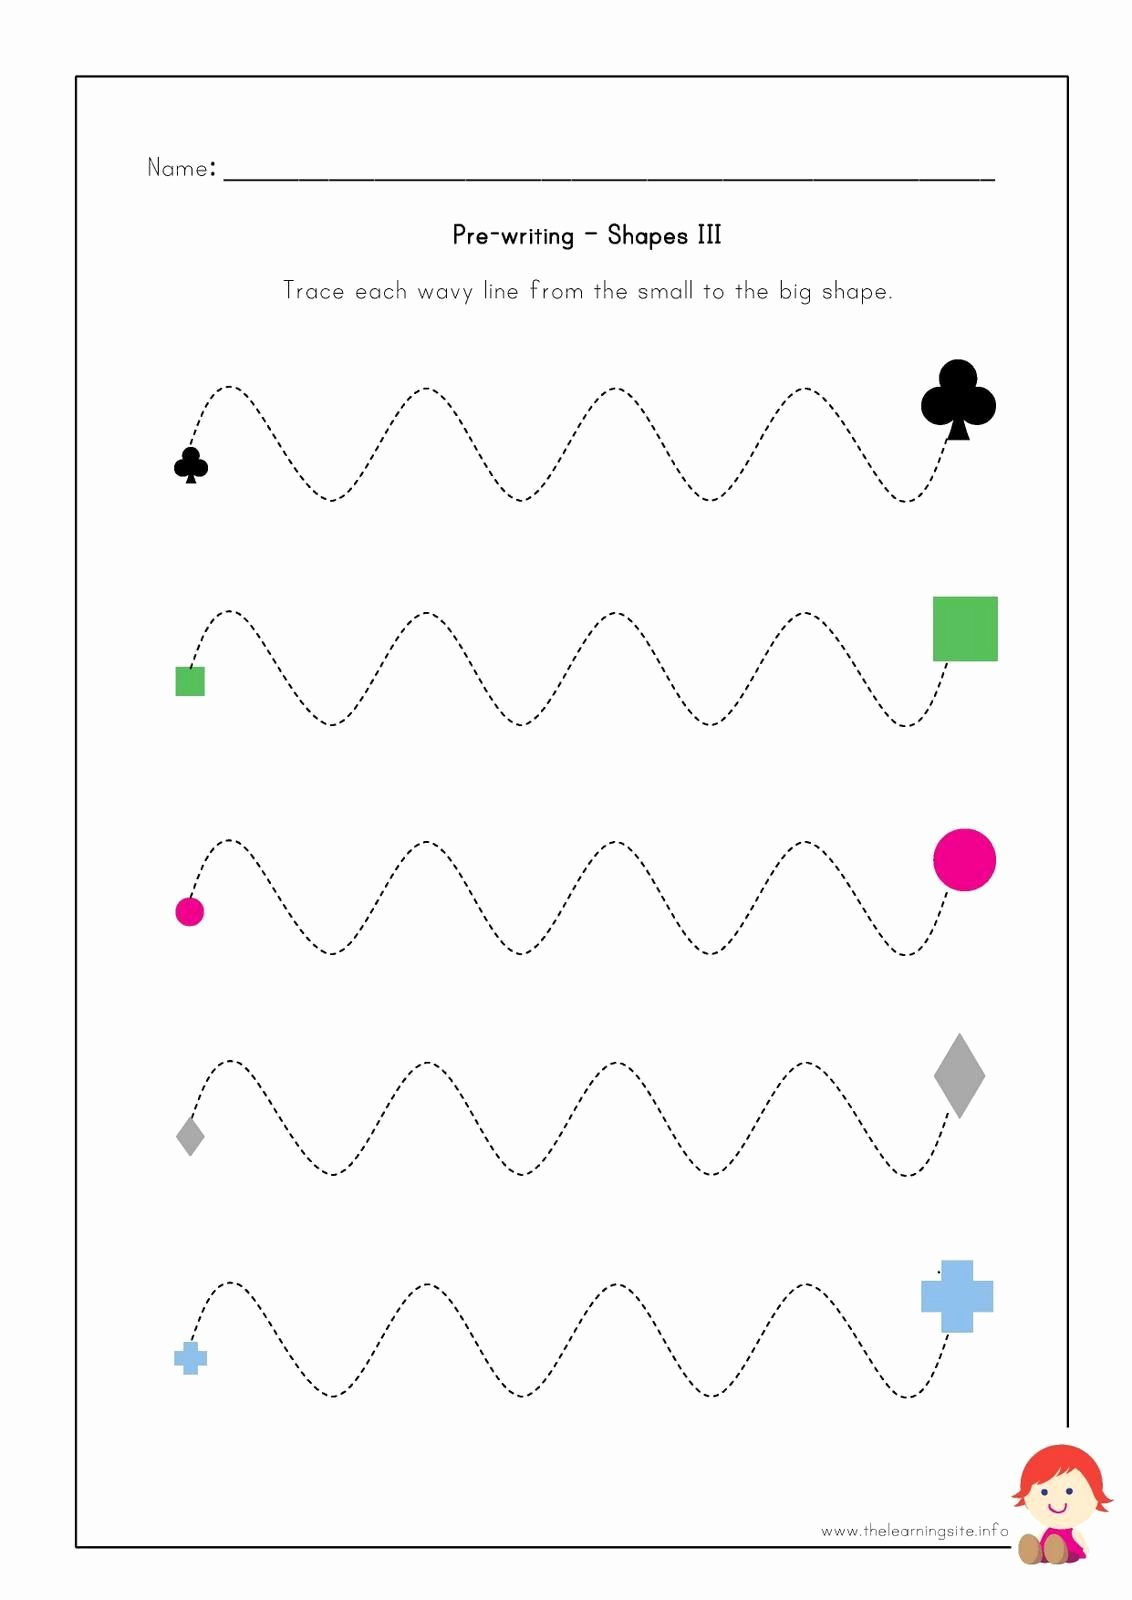 Prewriting Worksheets for Preschoolers New the Learning Site Pre Writing Worksheets Shapes